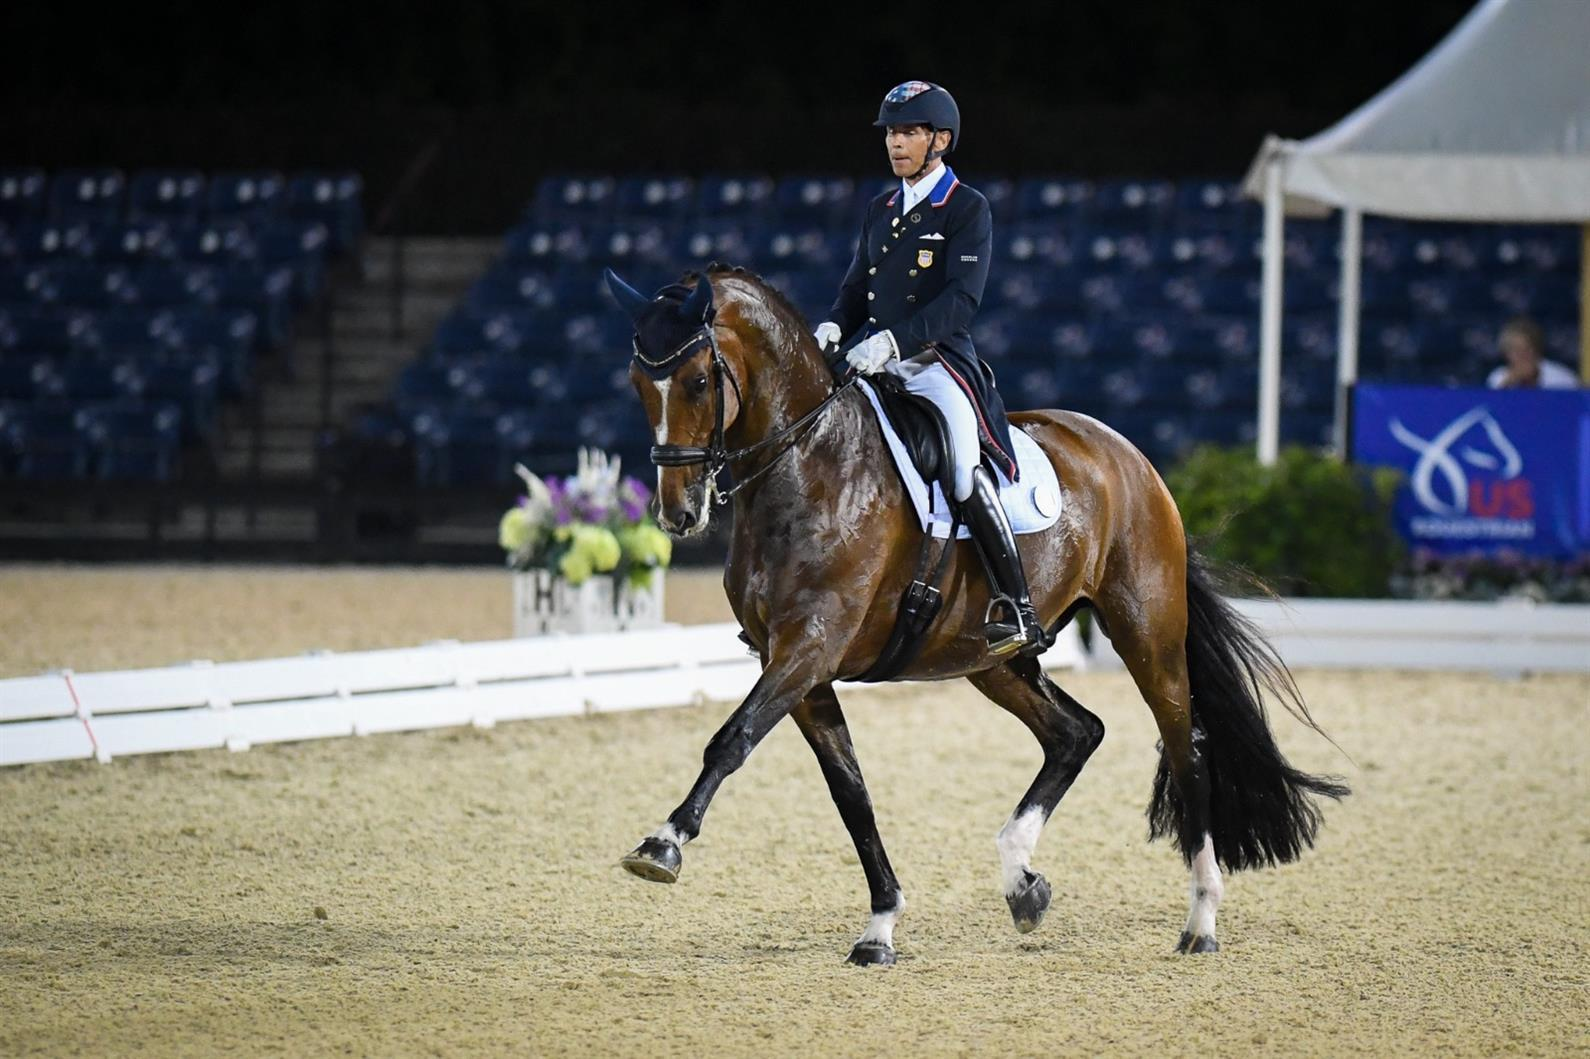 Steffen Peters and Suppenkasper performing at the U.S. Dressage Mandatory Event in Wellington, Fla.